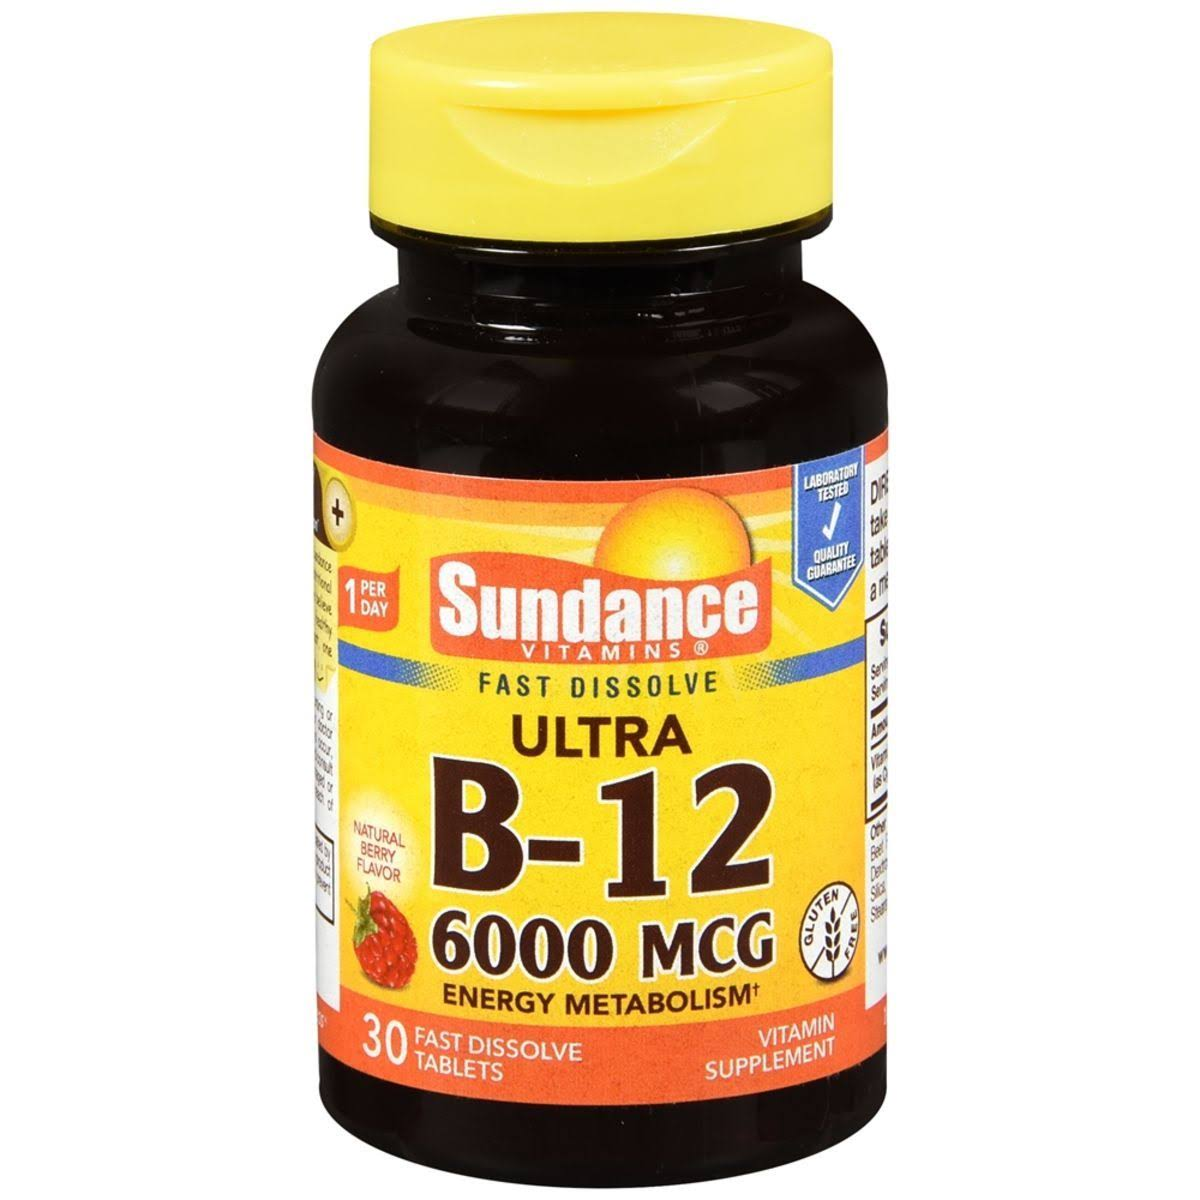 Sundance Ultra Vitamin B12 Tablets Metabolism Supplement - 30ct